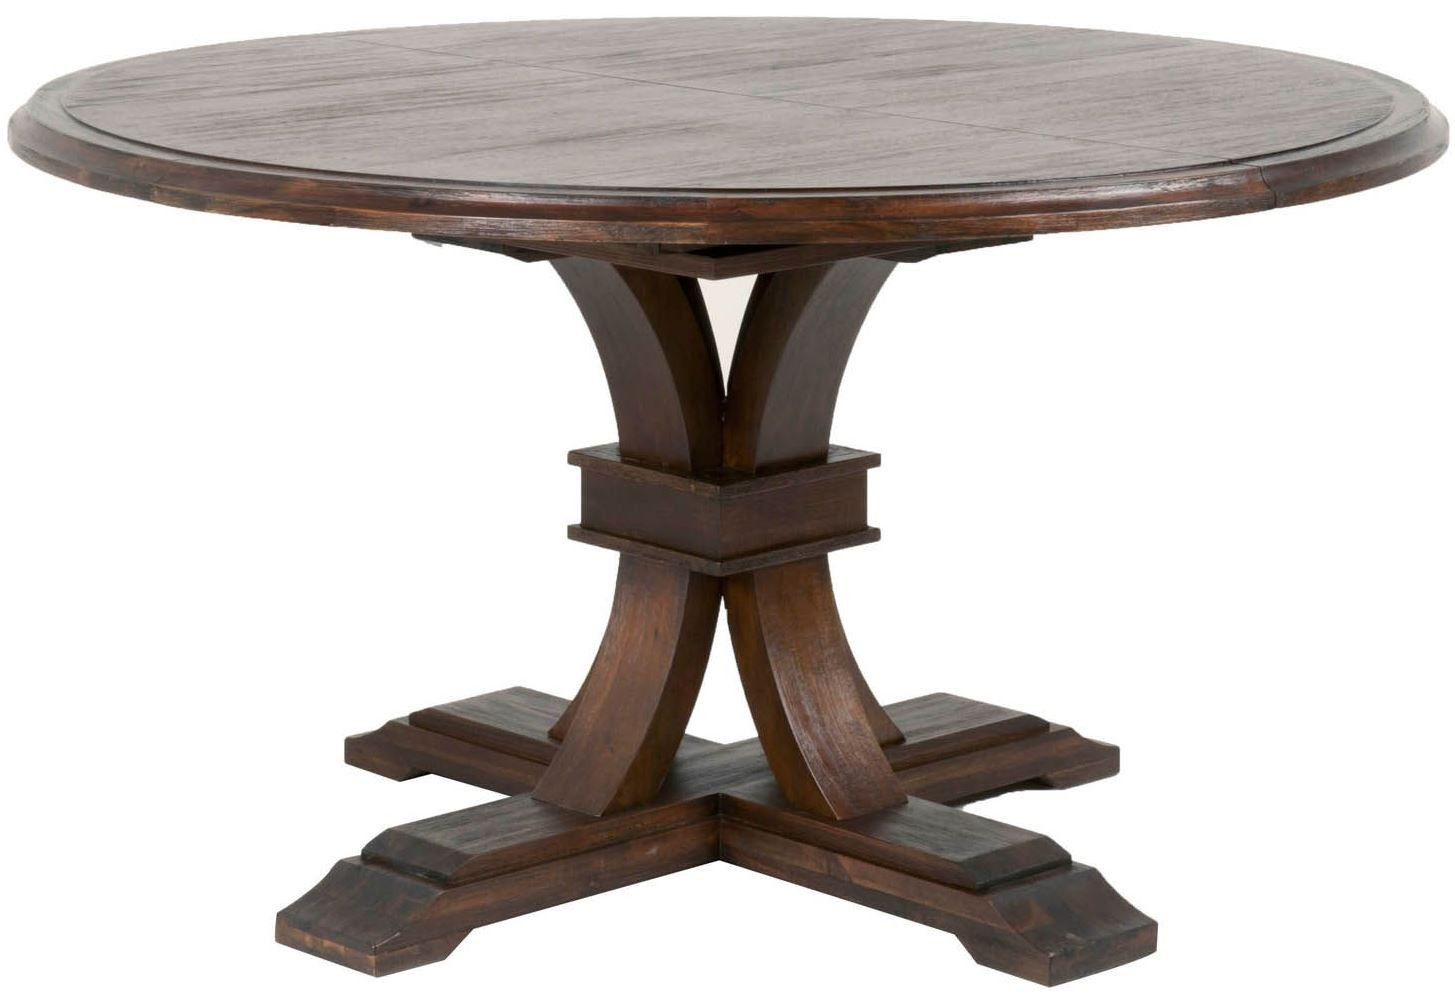 Best ideas about Round Extendable Dining Table . Save or Pin Traditions Rustic Java Devon Round Extendable Dining Table Now.